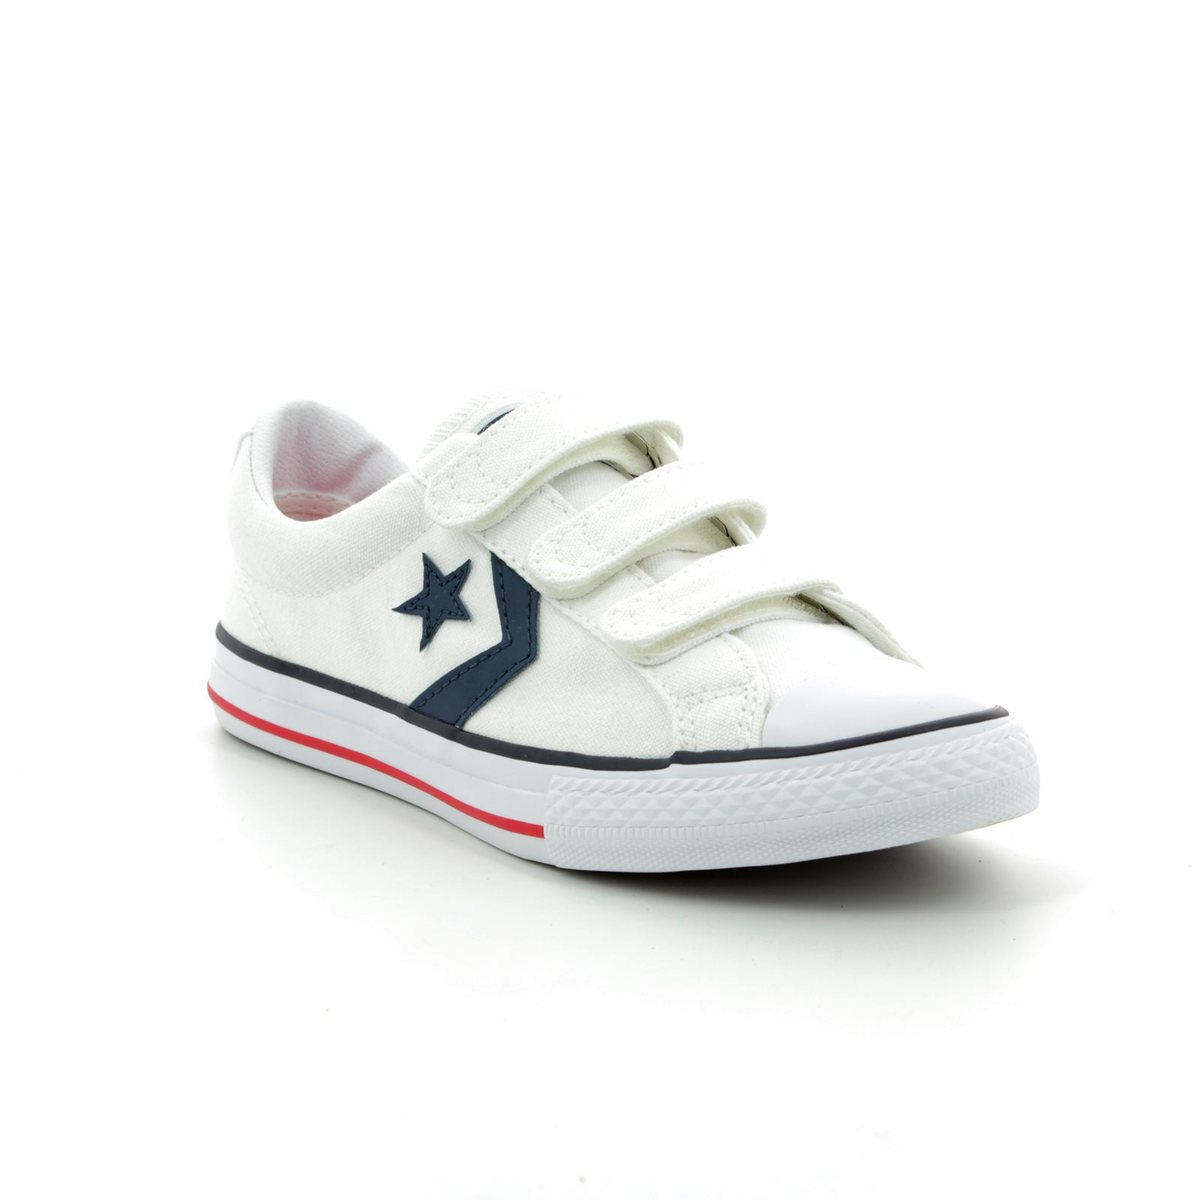 7884670ea39 Converse Trainers - White multi - 315660 194 Star Player 3V OX Velcro